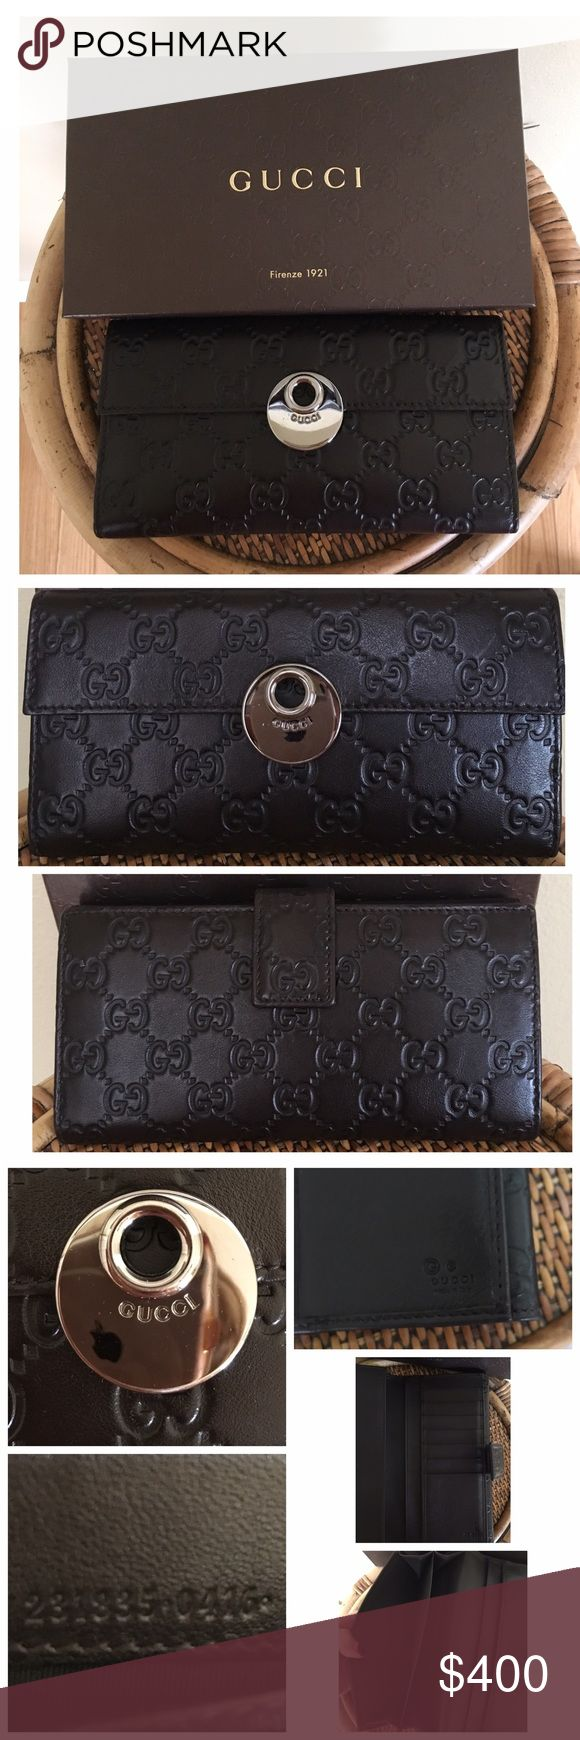 """GUCCI GUCCISSIMA WALLET Very gently used condition.  Very minor surface scratches to the hardware.  Very clean.  One interior surface scratch on the bill compartment.  ALL MEASUREMENTS ARE APPROXIMATE- 7.5"""" L X 4.0"""" H. Snap coin compartment. 7 credit card slots. 2 Bill compartments.  All stitching is intact.  Comes with box only.  Serial #231835•0416•🚫TRADES/LOWBALL Gucci Bags Wallets"""